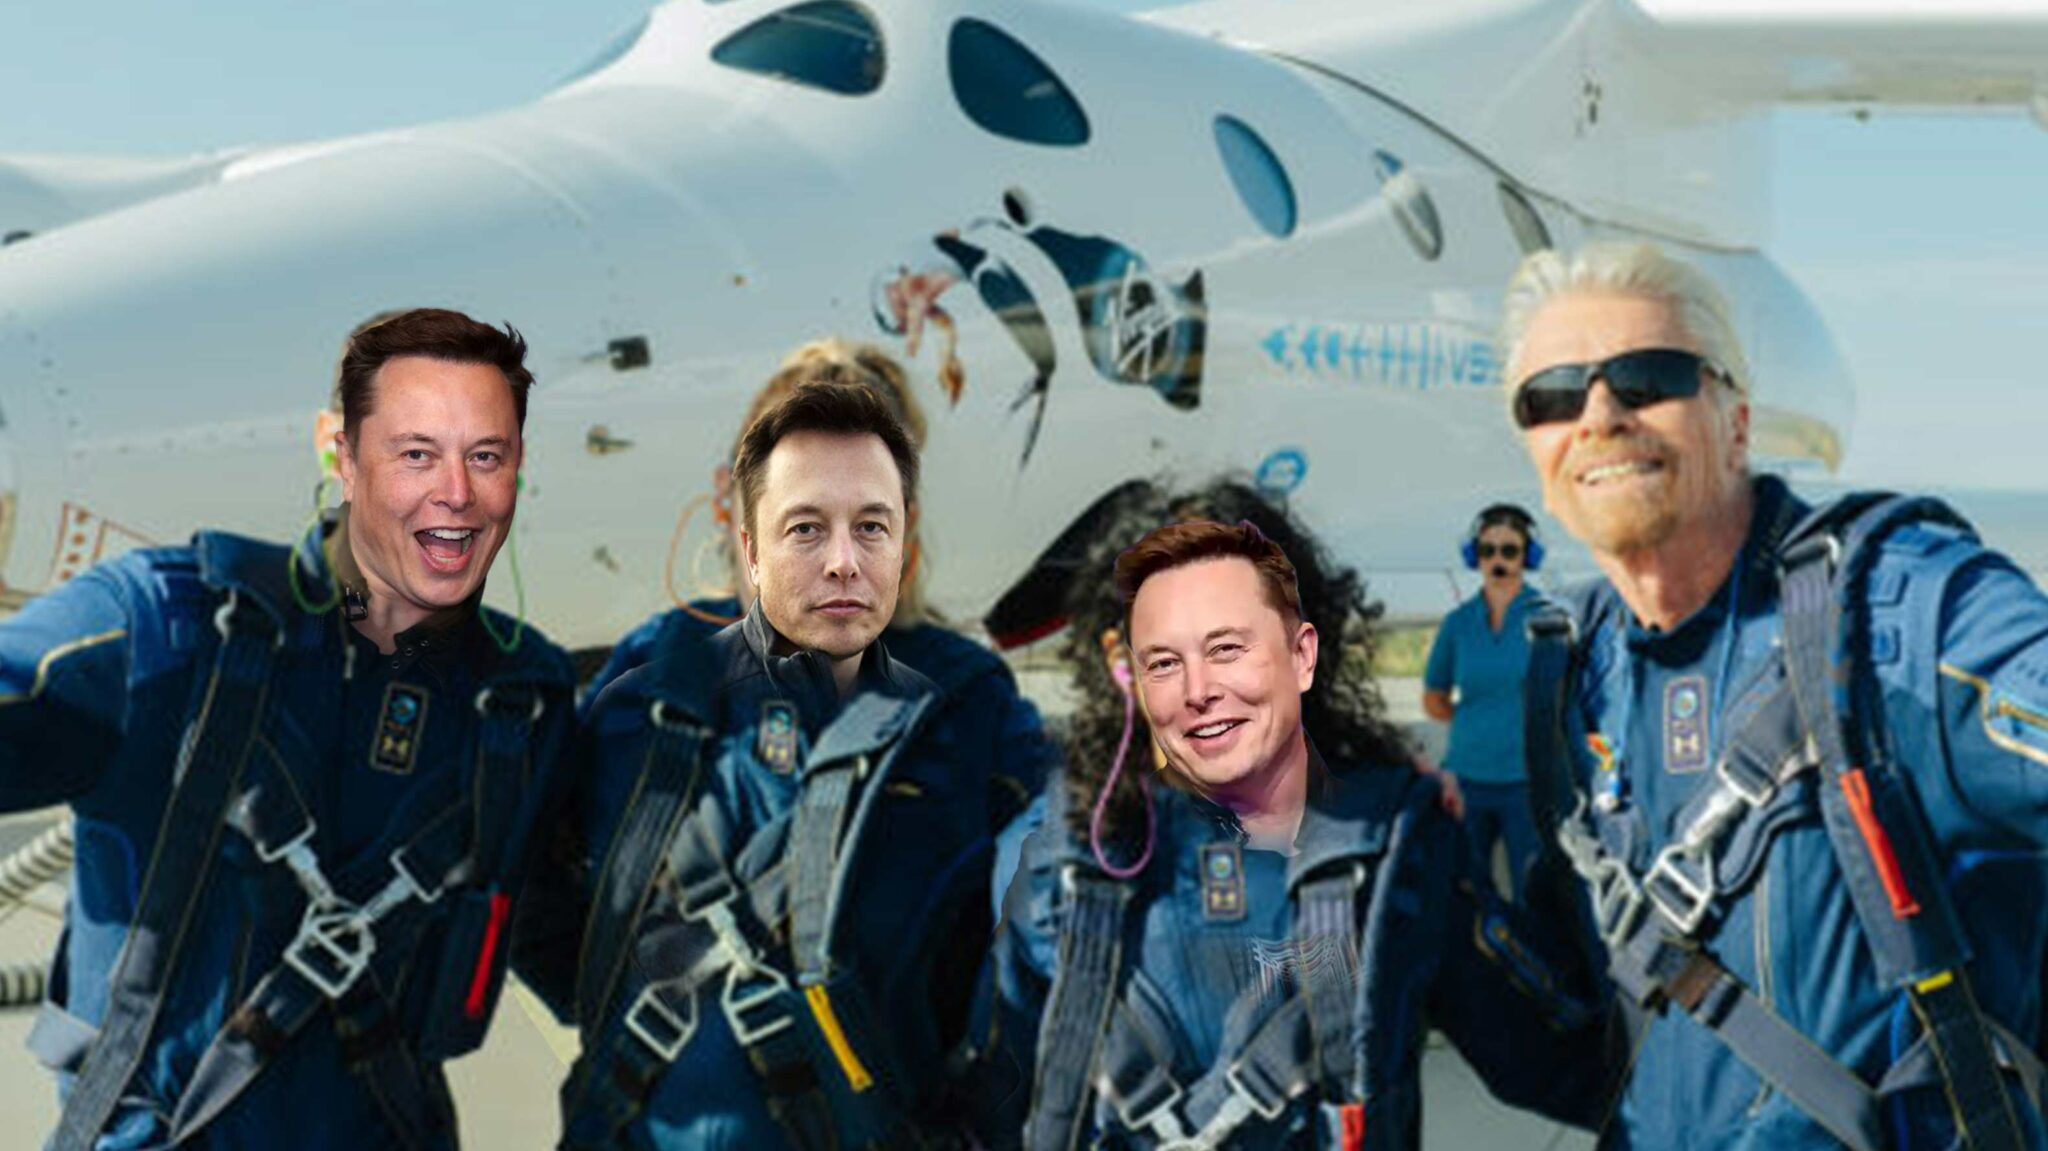 Elon Musk is going to space, but not in a SpaceX rocket